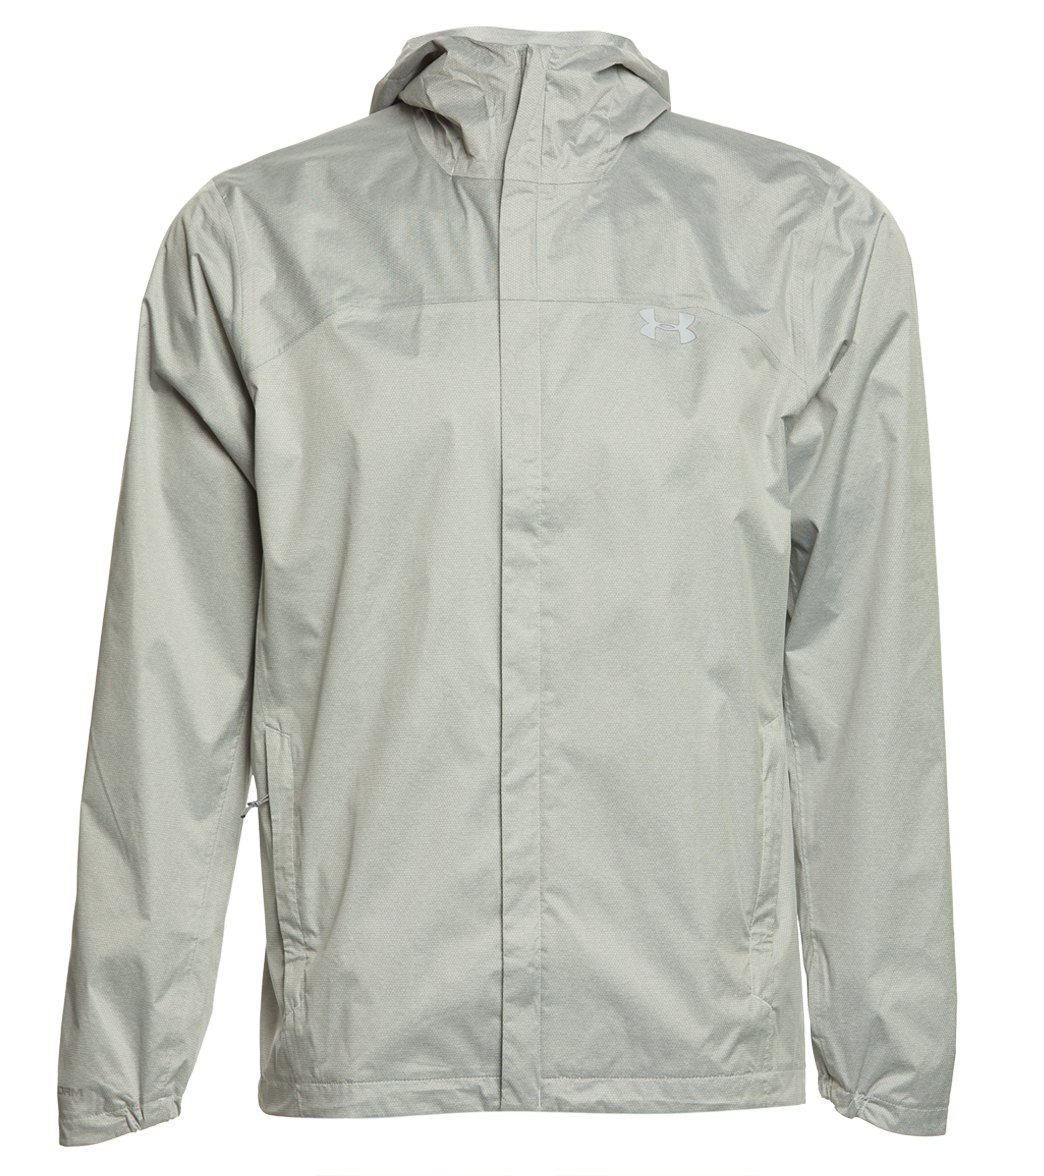 a158f63b54a4 Under Armour Men s UA Overlook Jacket at SwimOutlet.com - Free Shipping